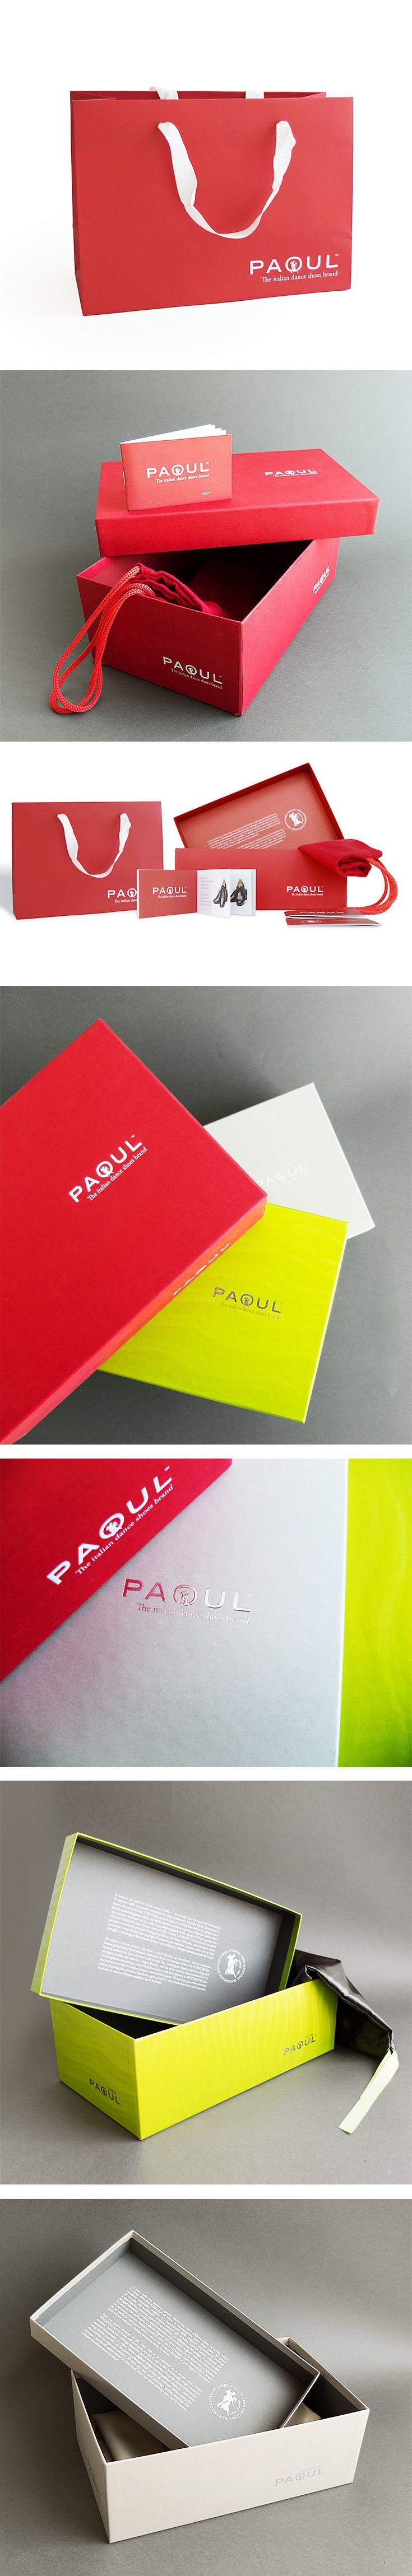 Packaging per Paoul, un progetto #effADV - Paoul packaging, effADV project - #packaging #shopper #shoebox #shoes #box